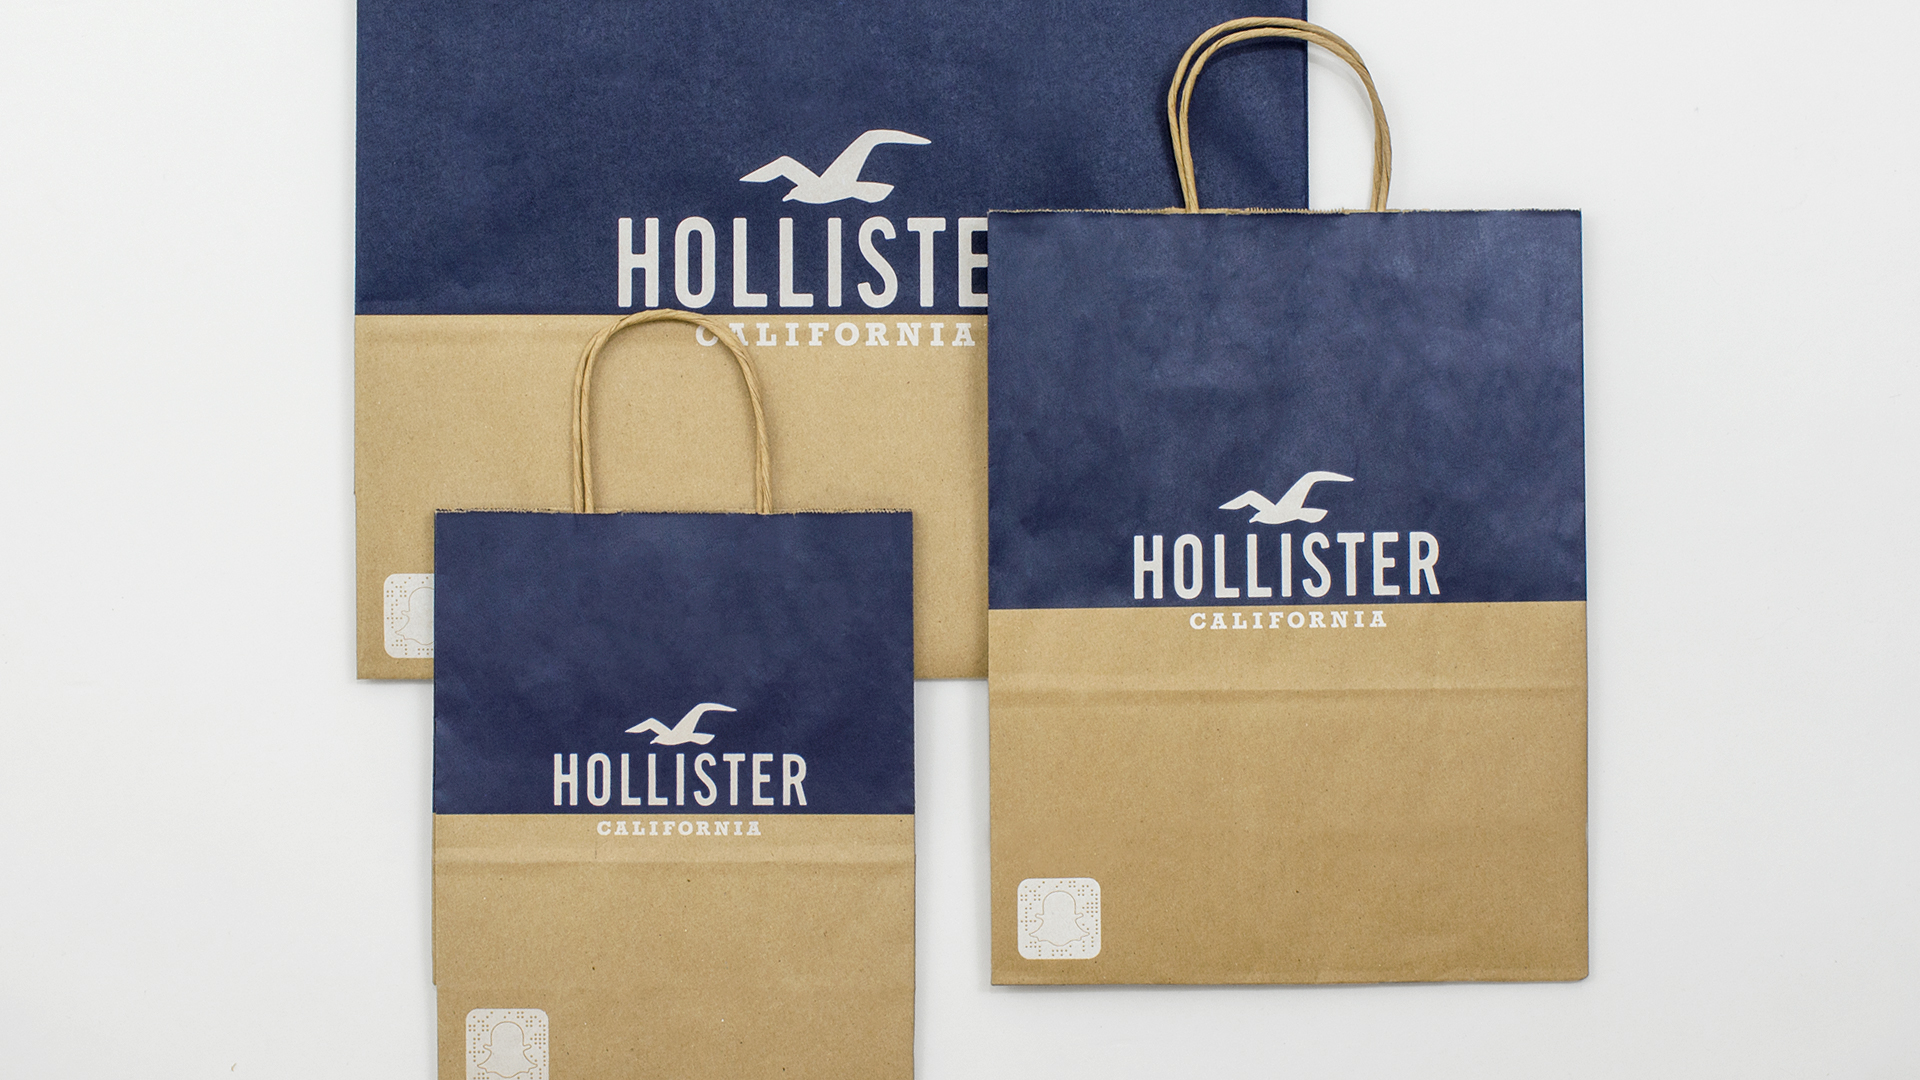 Hollister S Holiday 2017 Ping Bag Both Bags Were Inspired By Midcentury Southern California Surf Culture And Made From 80 Recycled Content